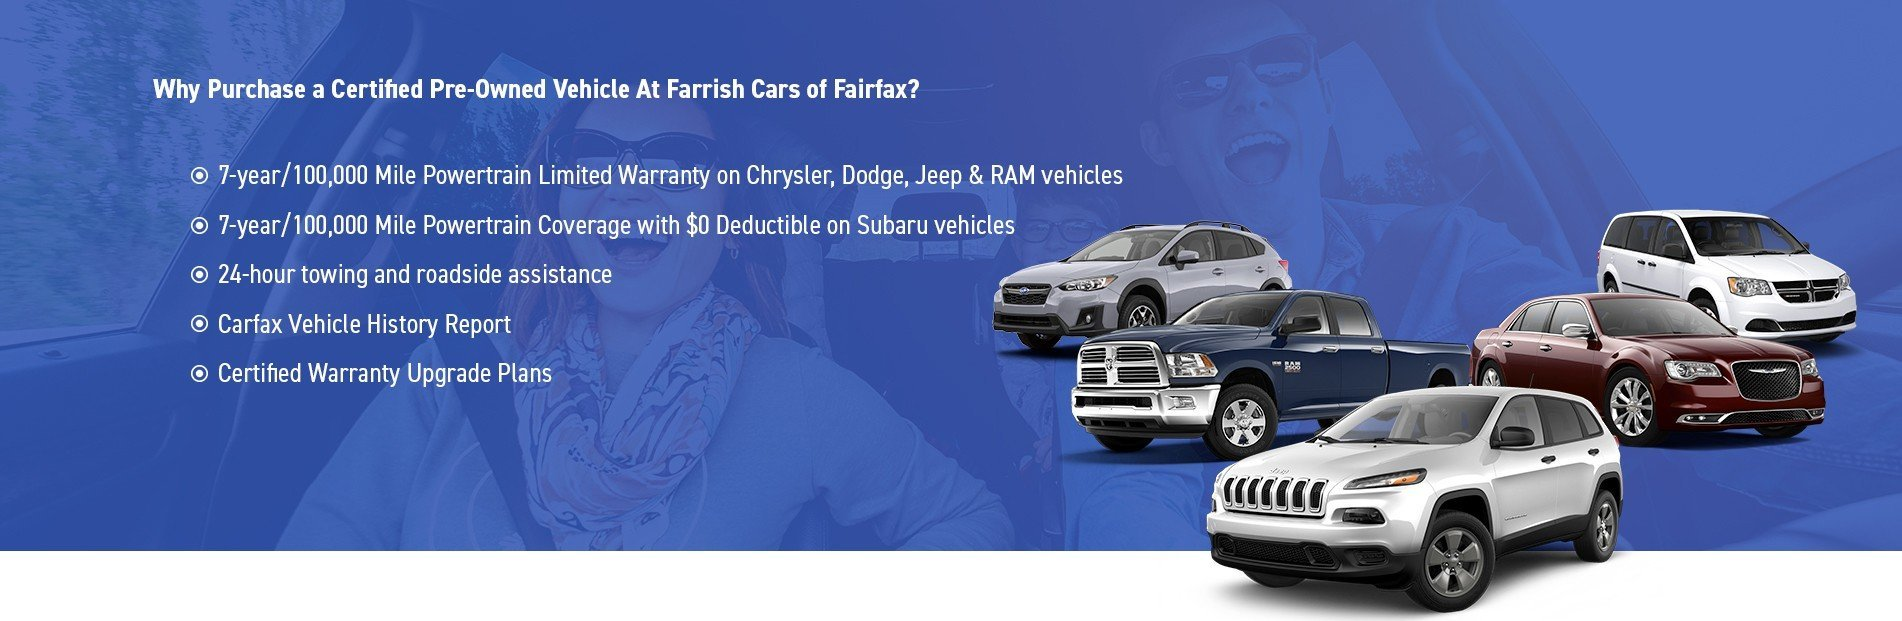 Farrish Of Fairfax >> Certified Pre Owned Vehicles At Farrish Of Fairfax